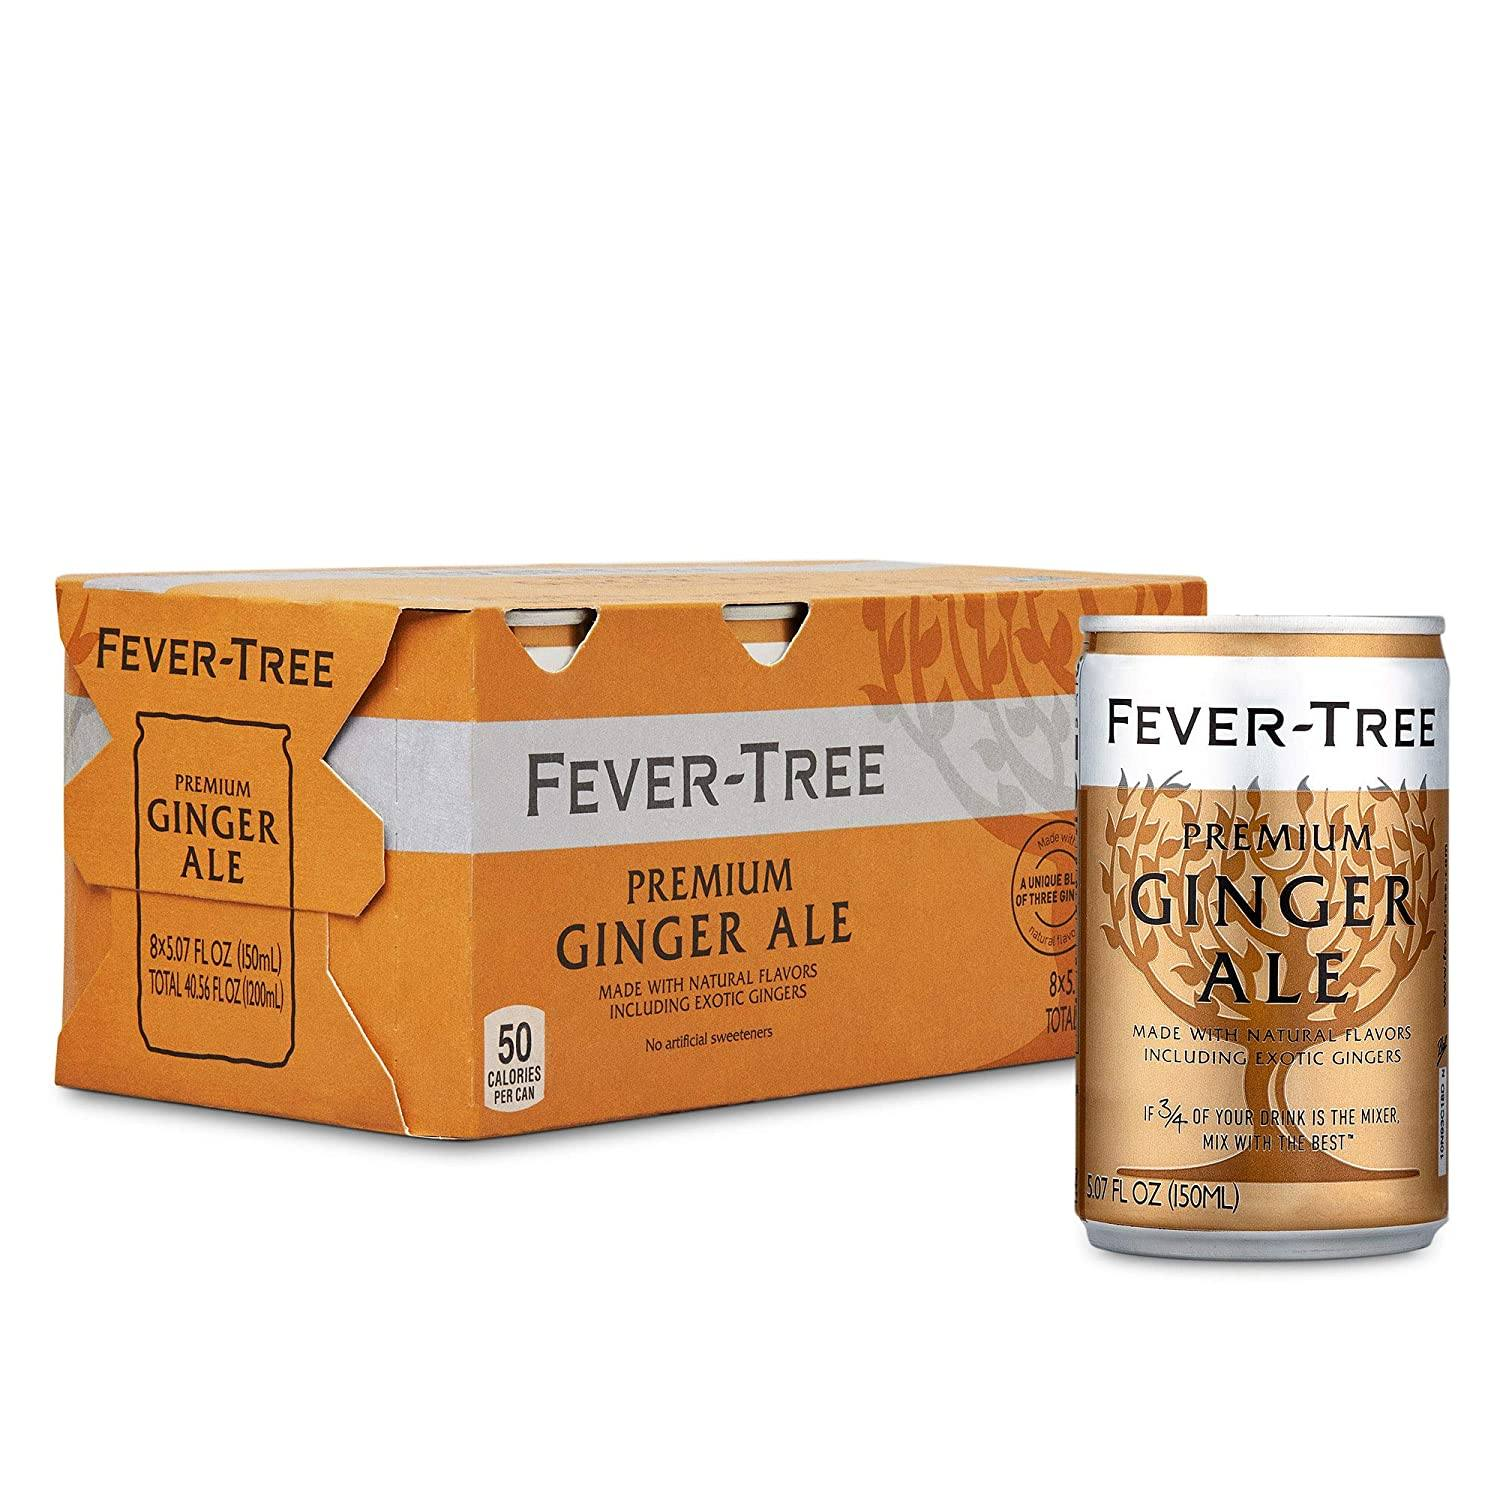 Food & Drink - Fever-Tree - Ginger Ale, 8x150ml